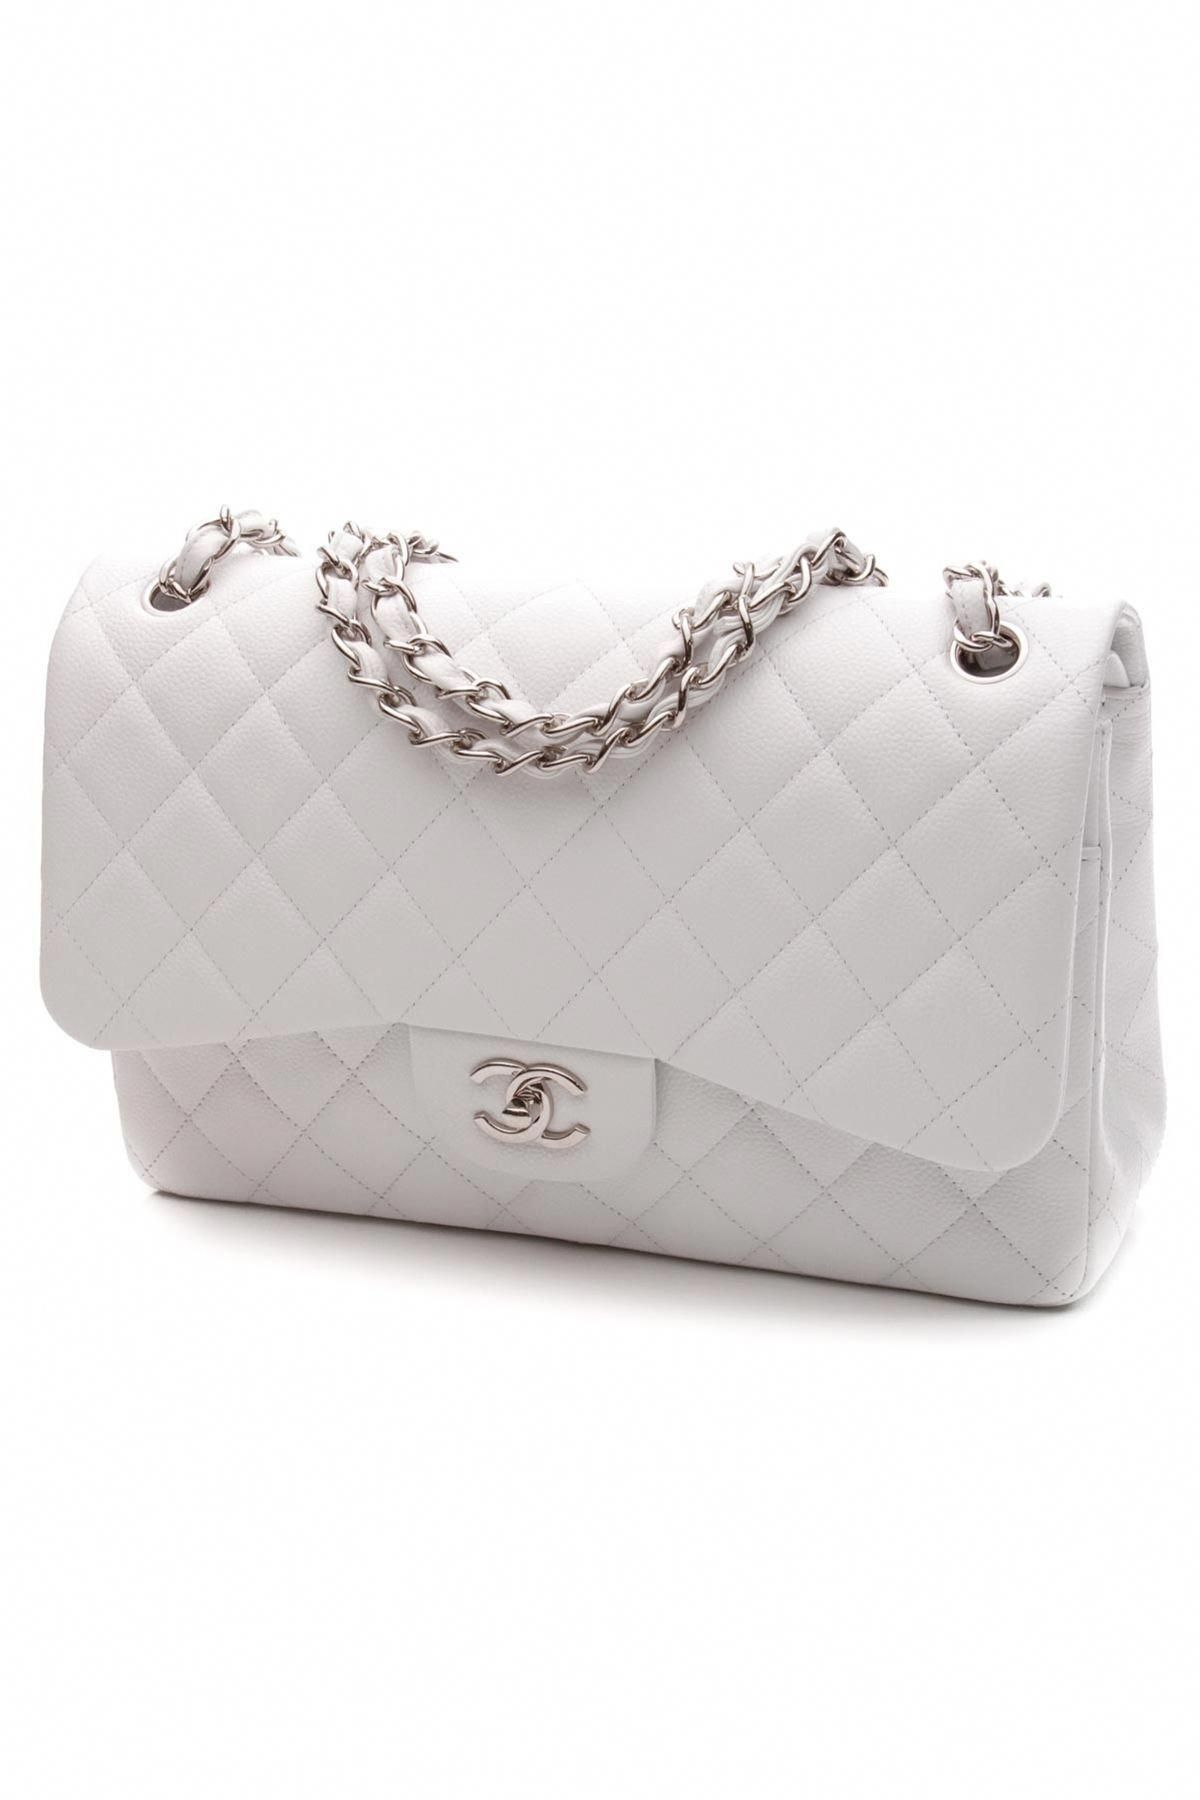 aa32711fbafc This white Chanel Classic Flap is absolutely impeccable! #Guccihandbags